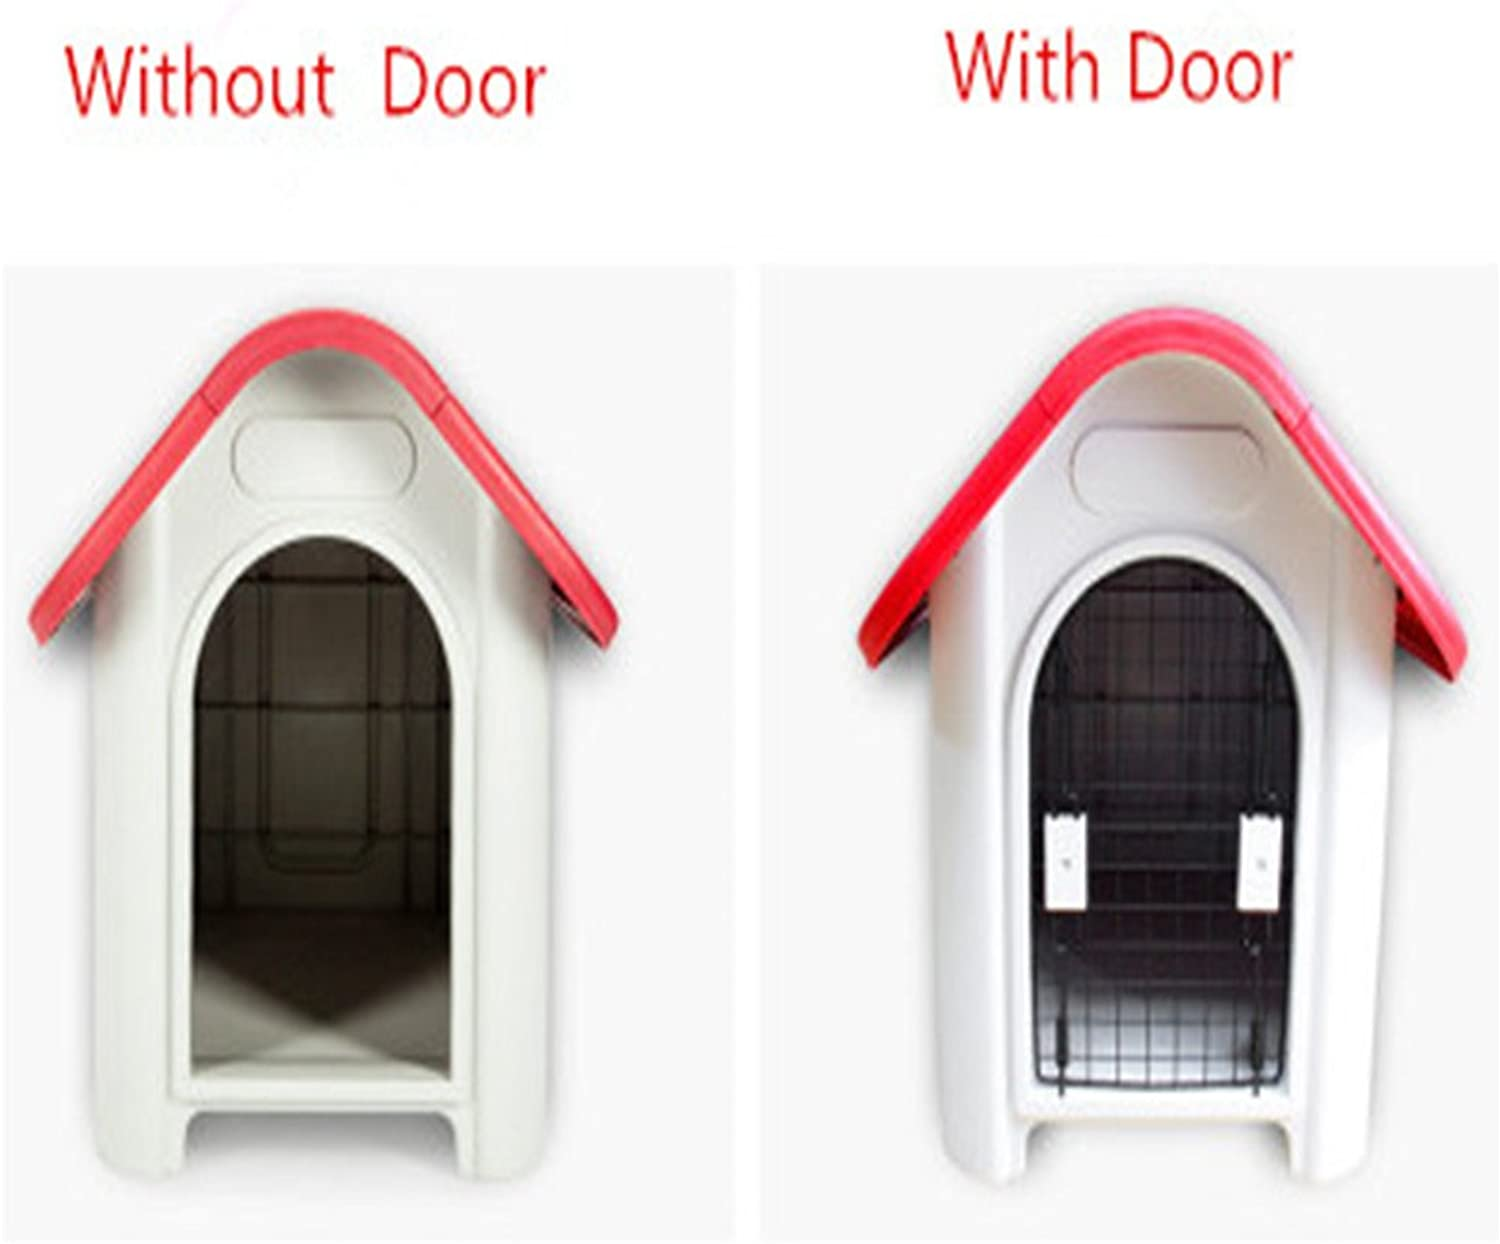 Jomax Small Outdoor Removable Rainproof Teddy Plastic Kennel Dog House Pet Nest without Door